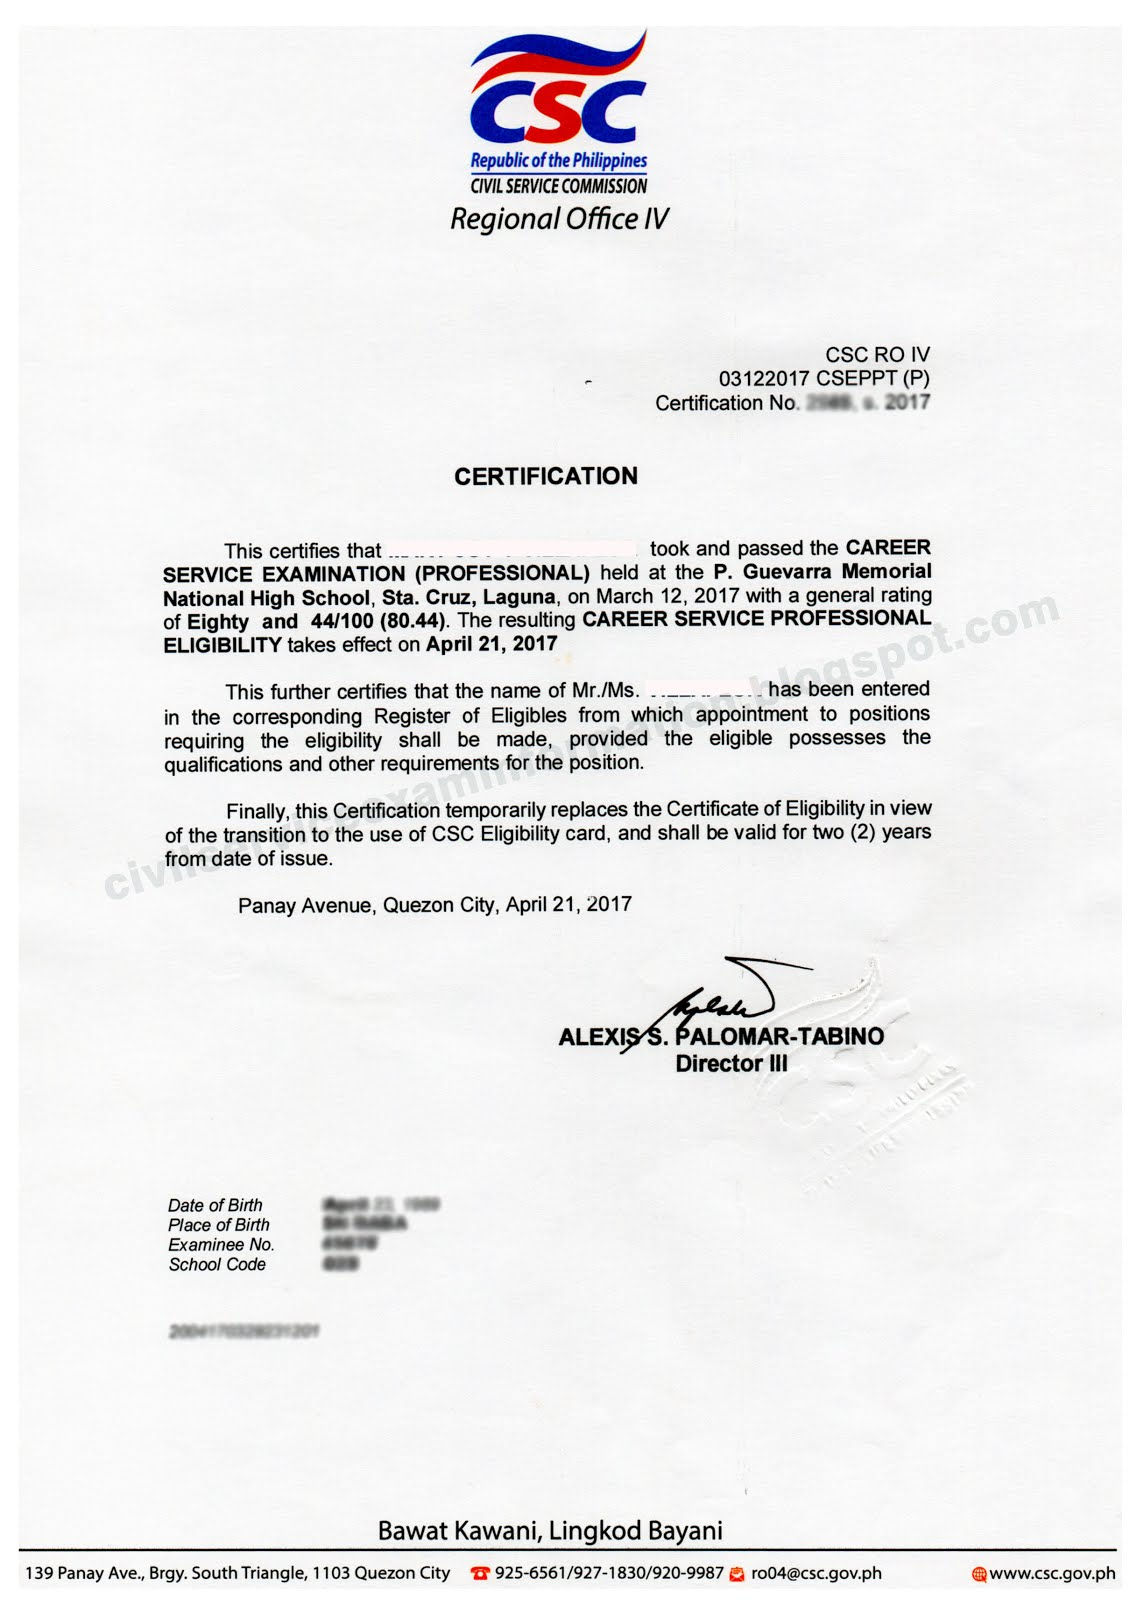 Civil Service Exam Ph How To Claim Certification Of Eligibility